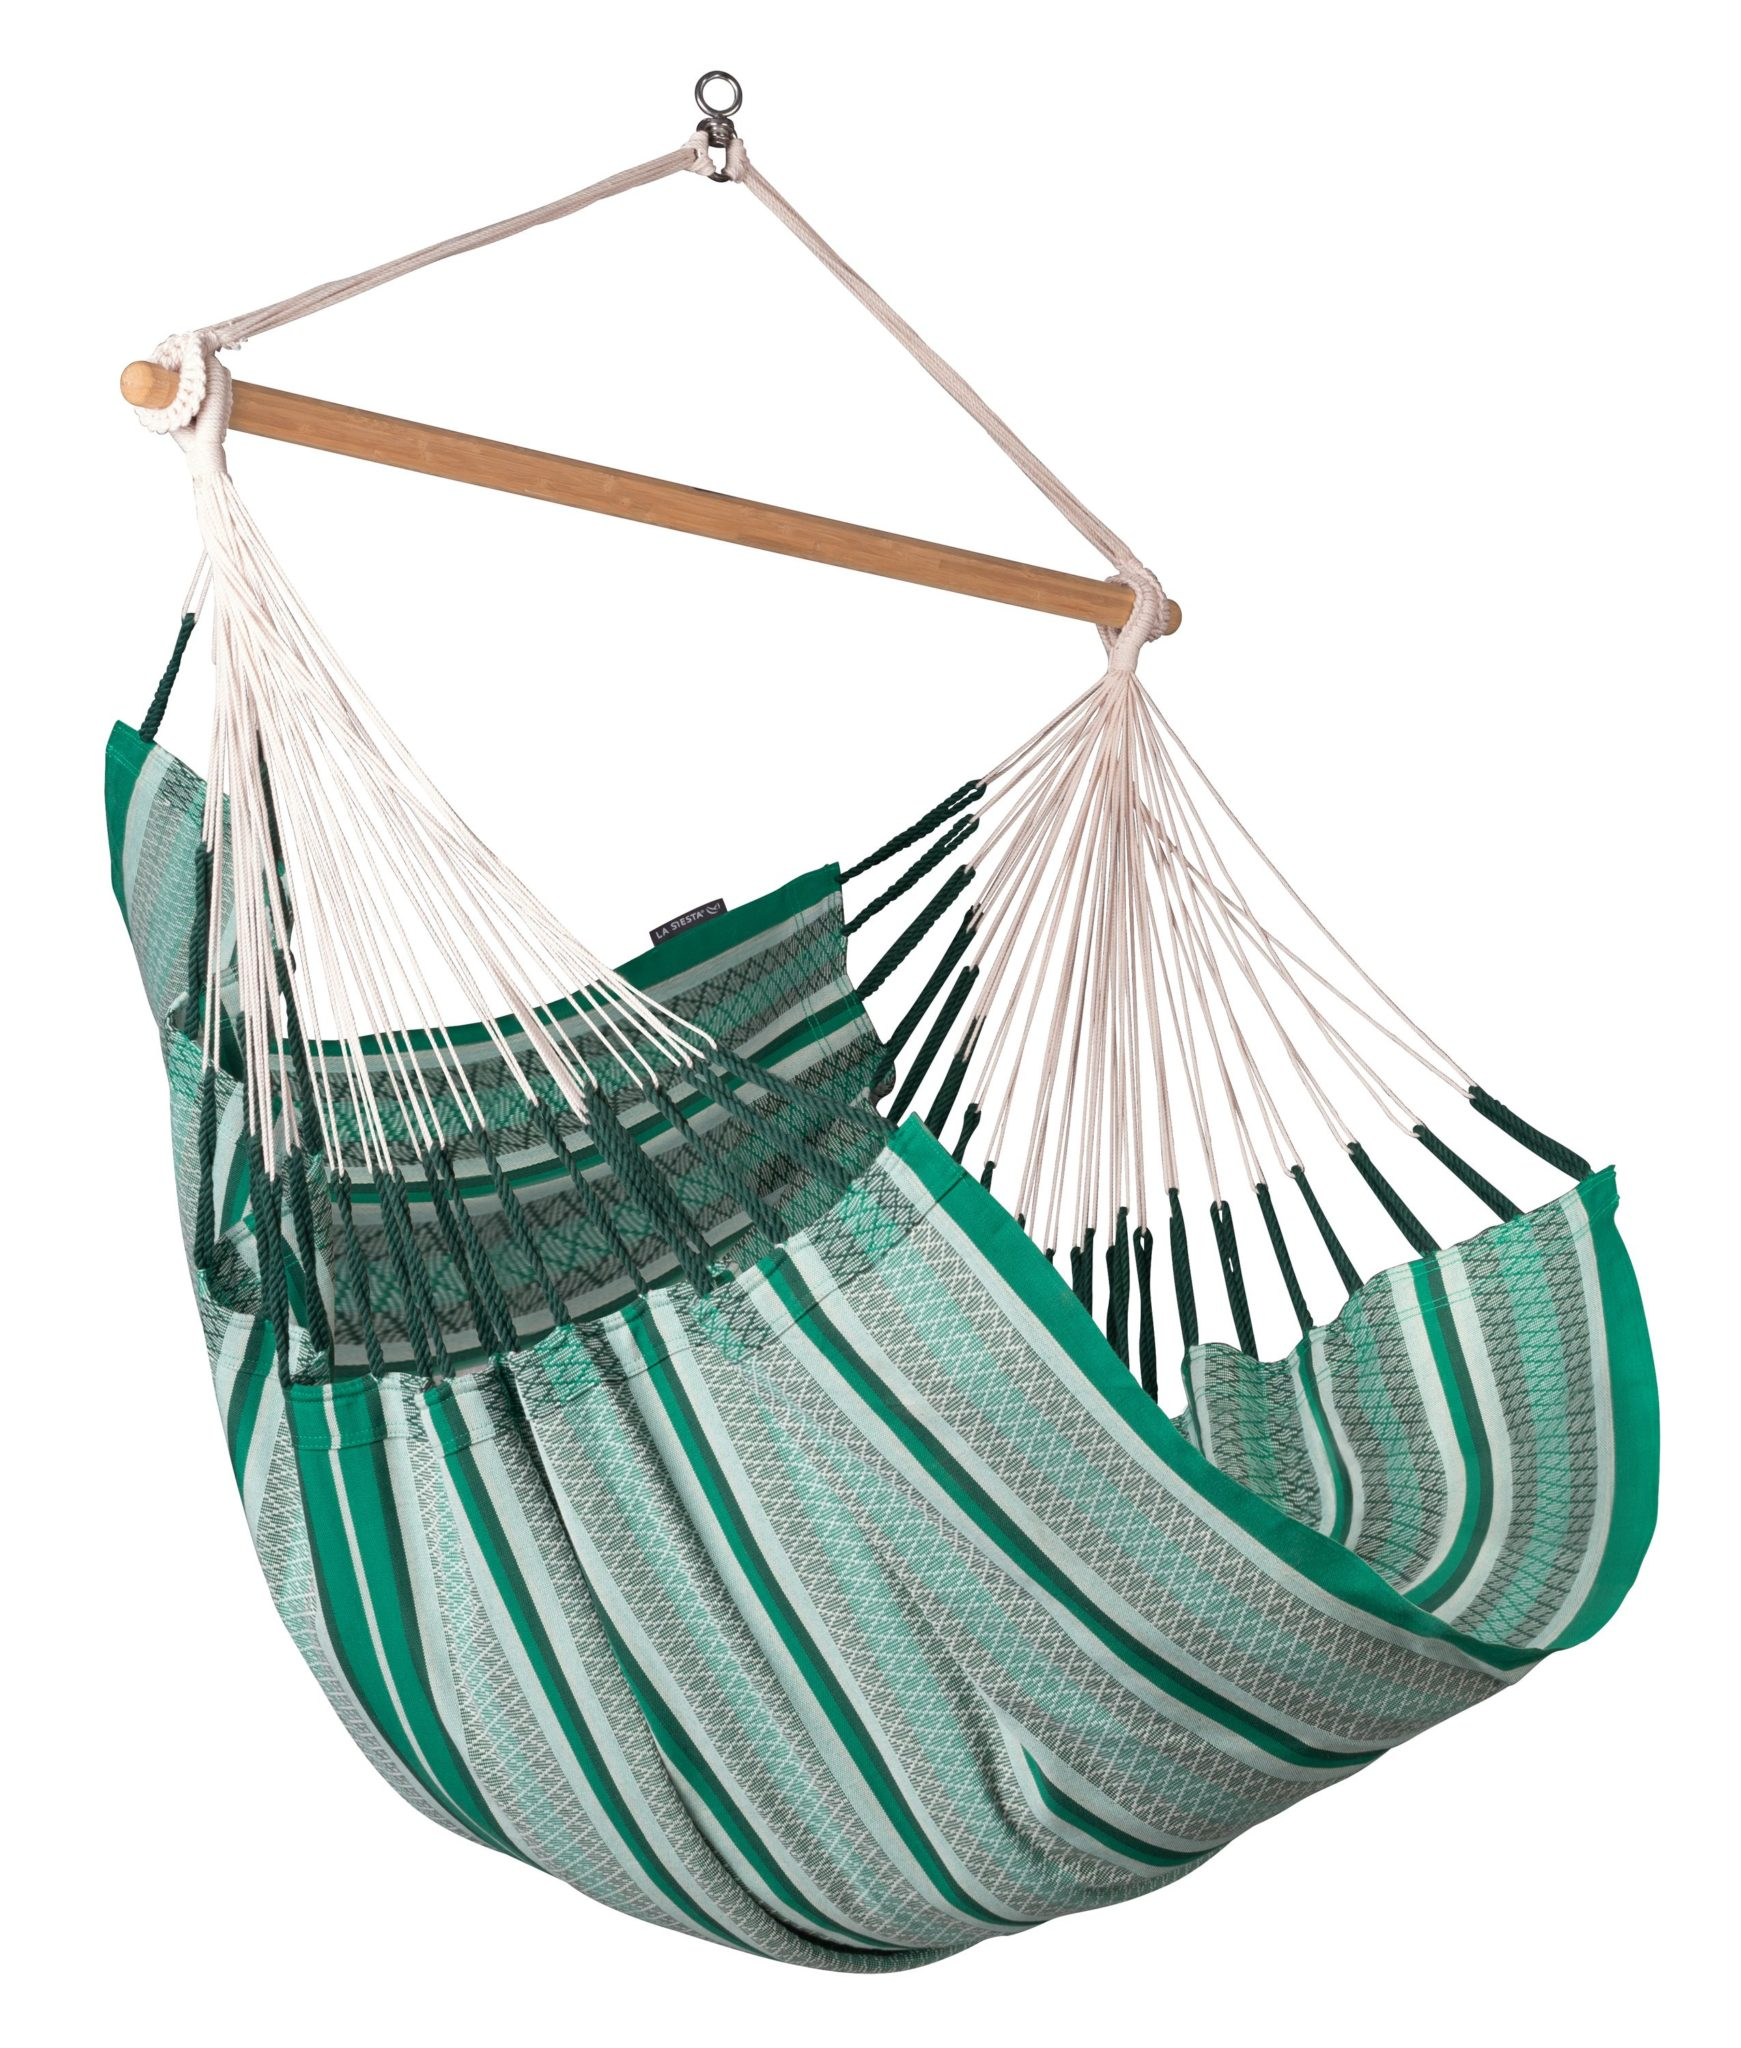 La Siesta Comfort Hammock Chair Northwest Nature Shop